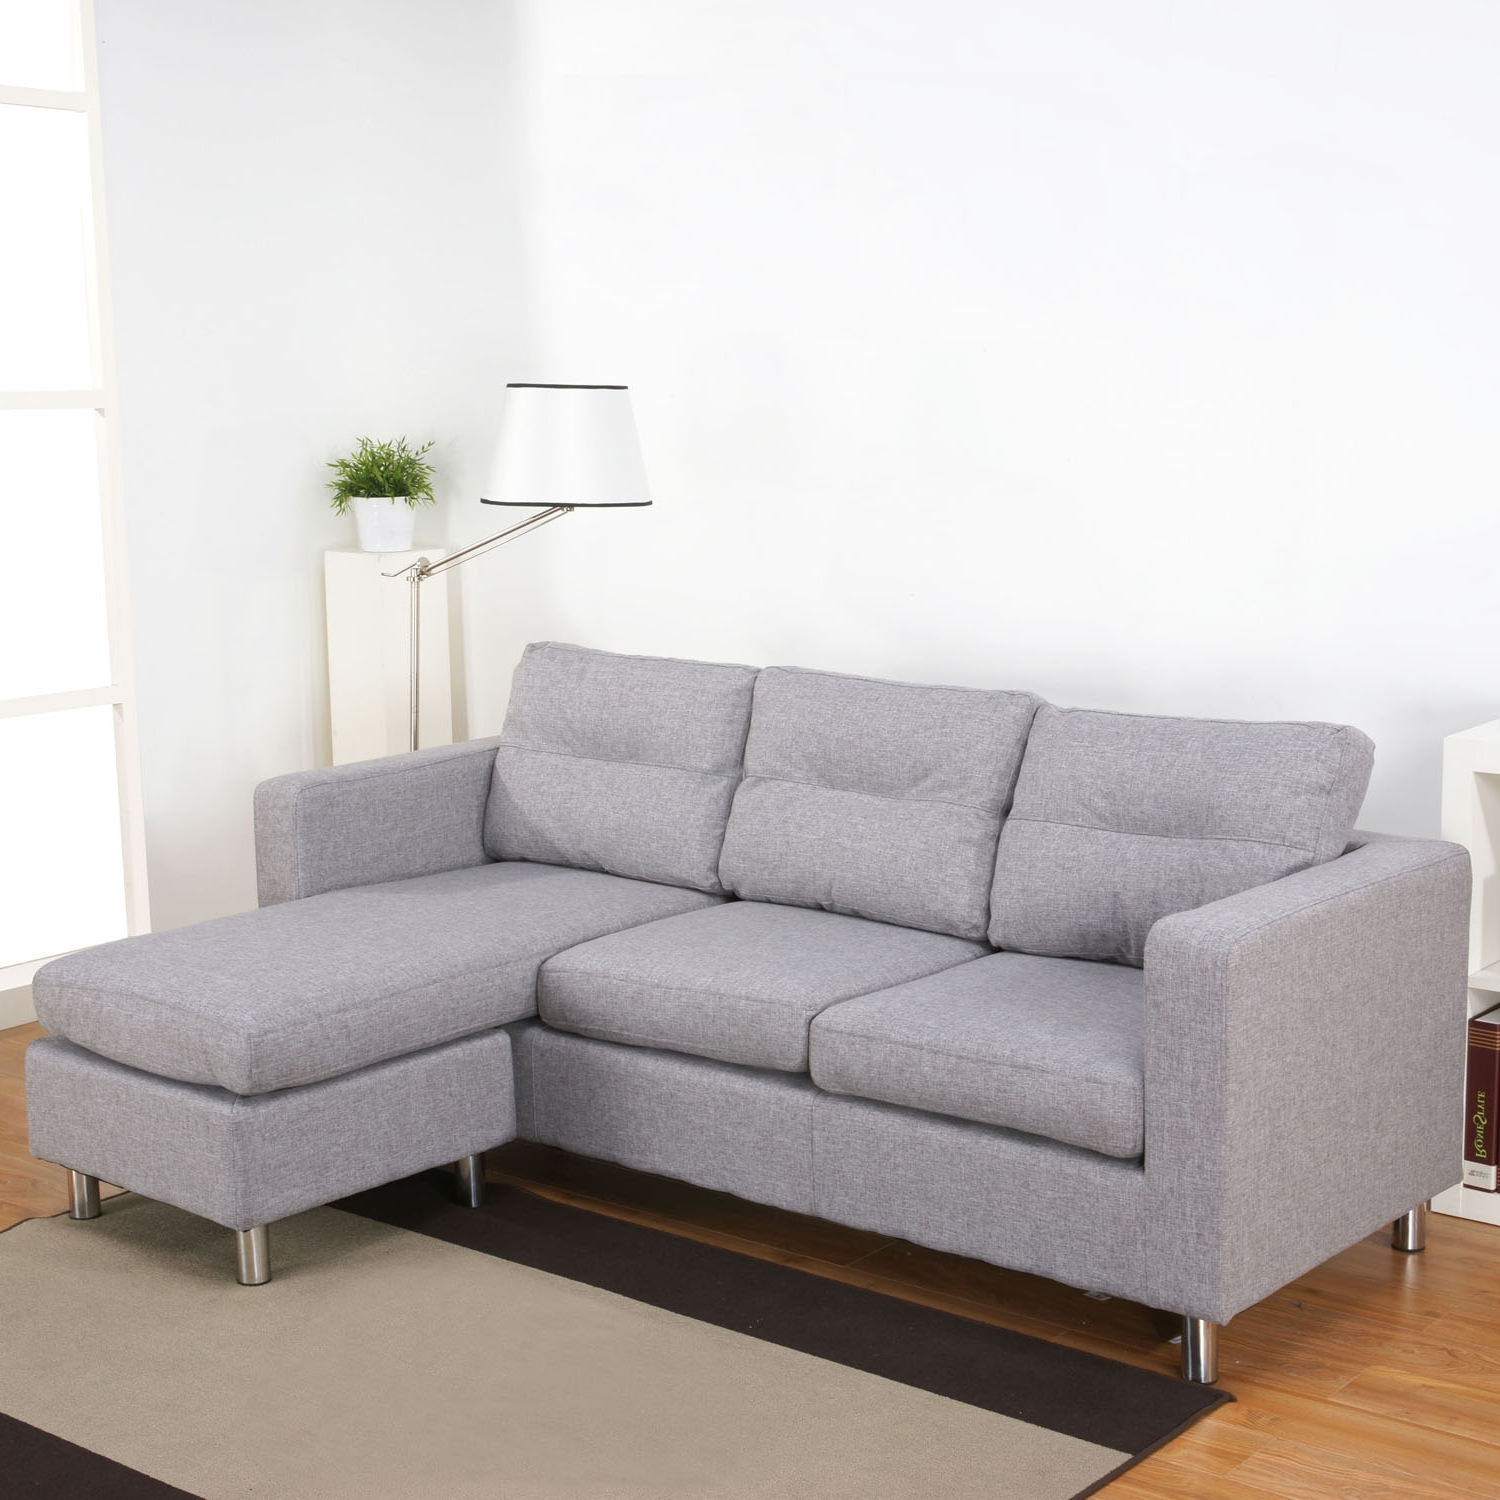 Grey Sofa Chaises With Regard To Trendy Gray Sectional Sofas With Chaise (View 7 of 15)